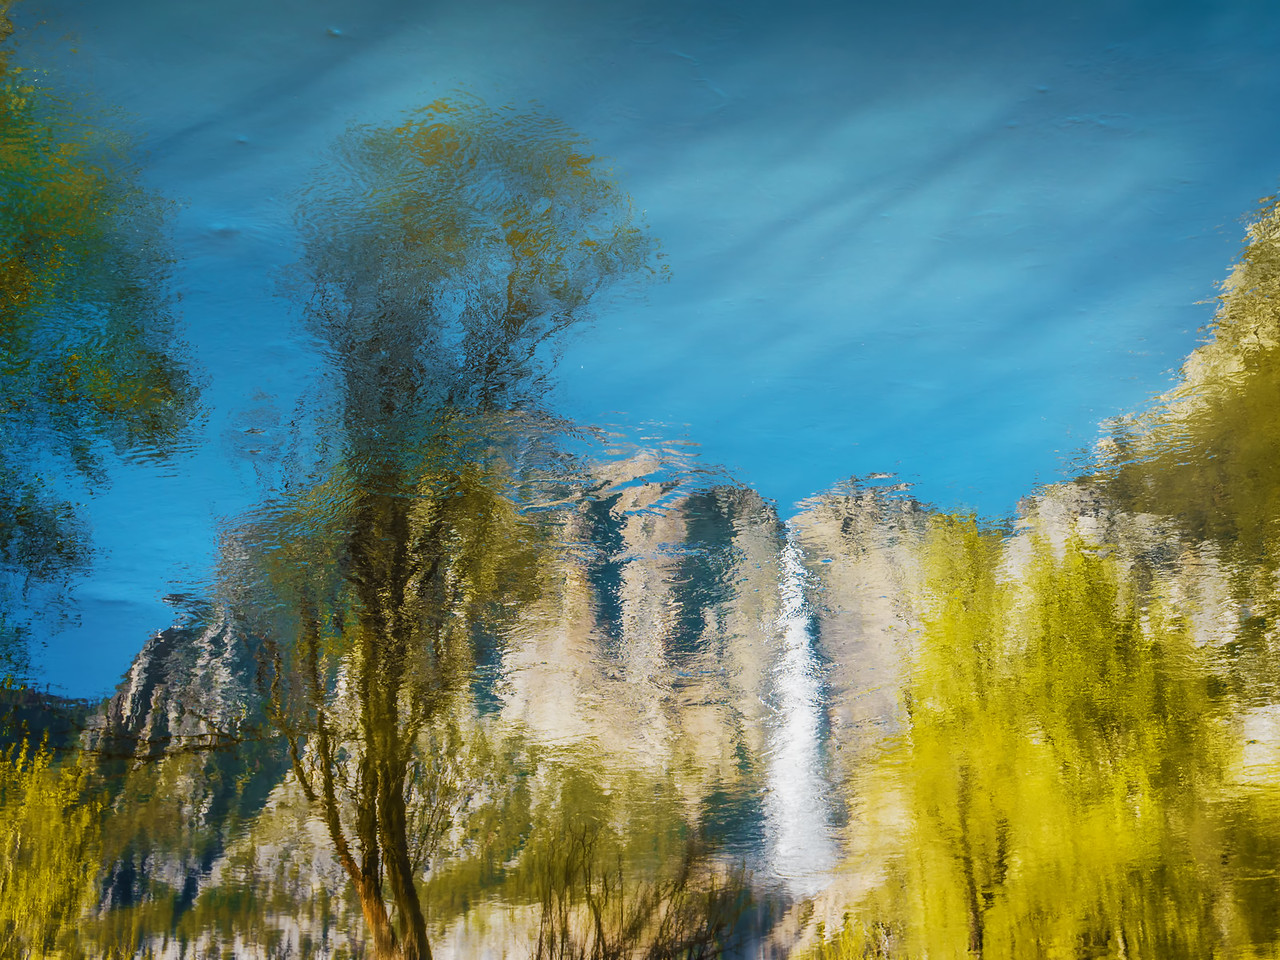 Abstract Landscape (California)